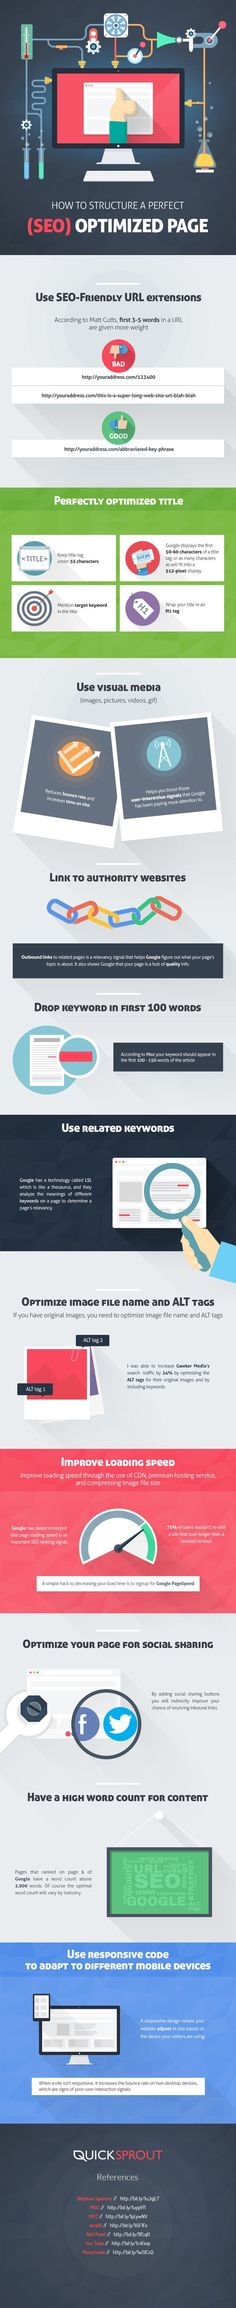 The Anatomy Of A Perfect SEO Optimized Website: Do you want to rank higher in Google search results? Are you wondering how to make your website more appealing and Google friendly? Then wonder no more!